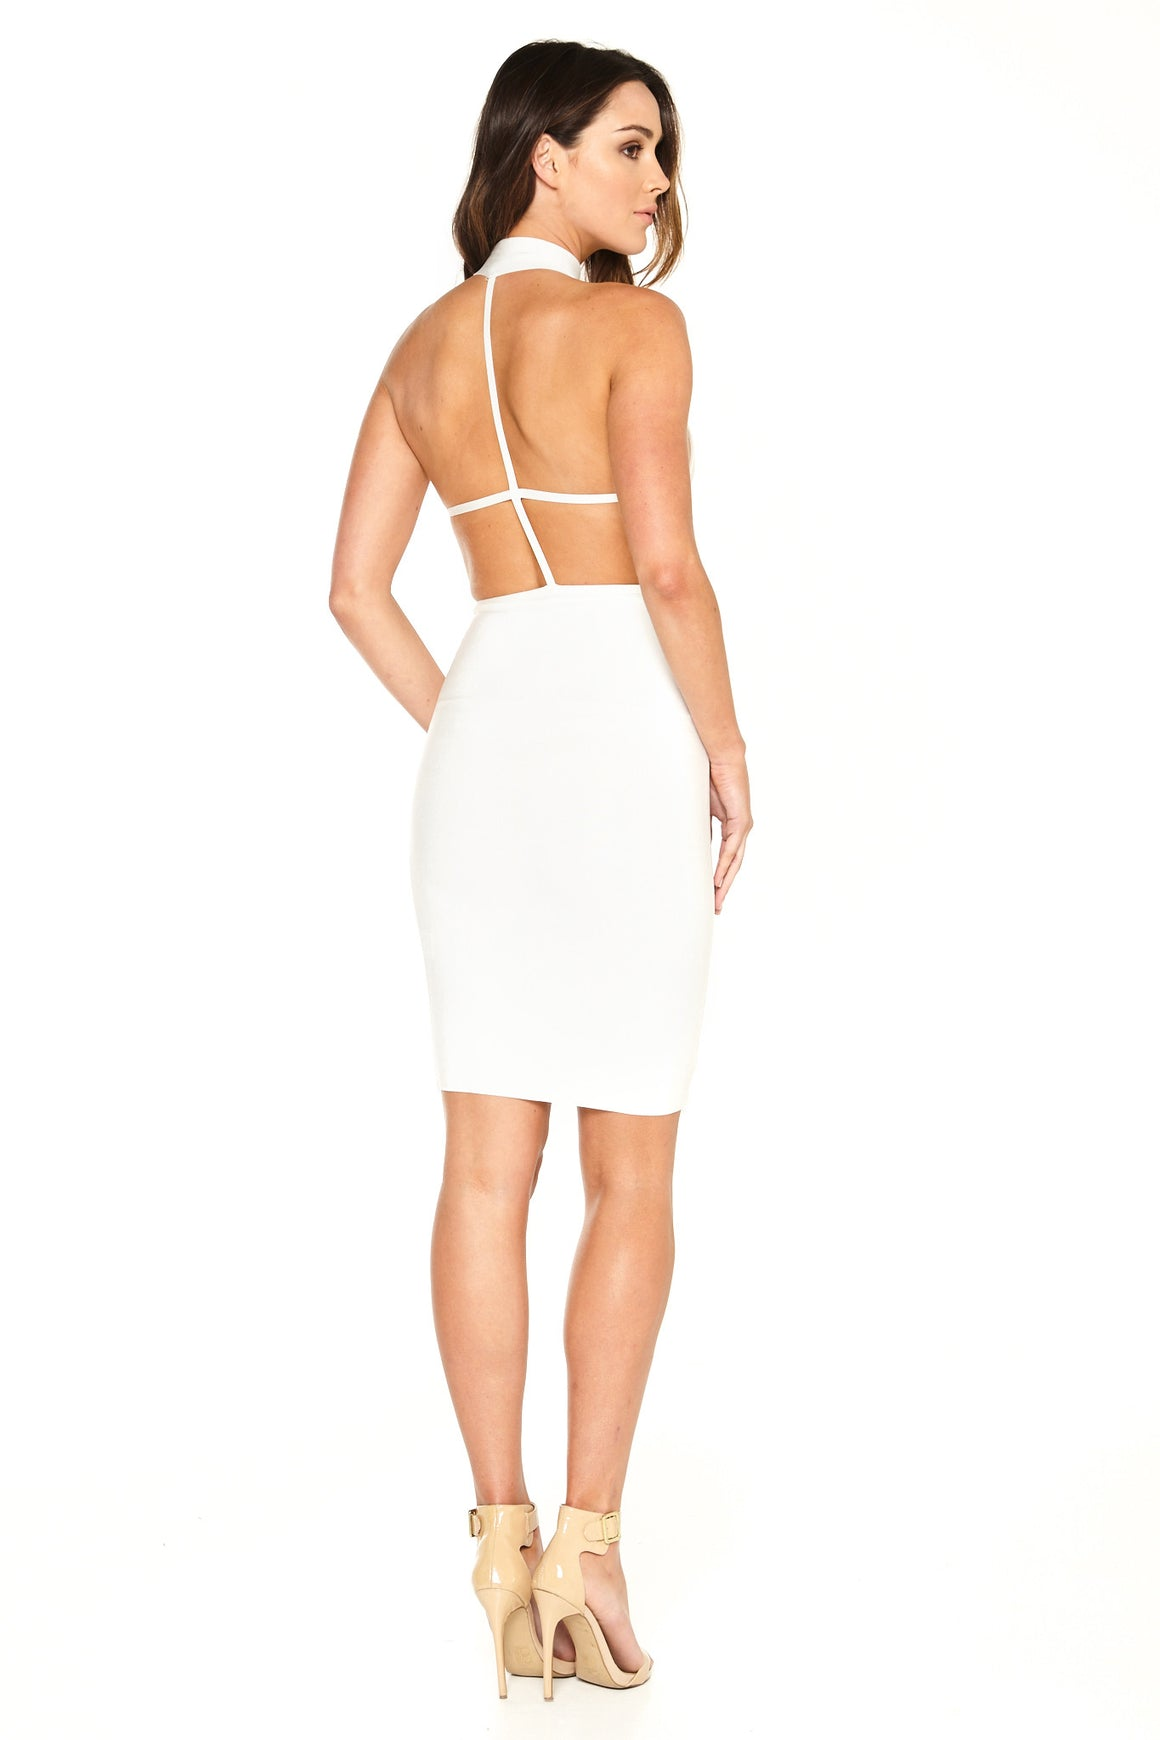 Ava T-Back Bandage Dress - White